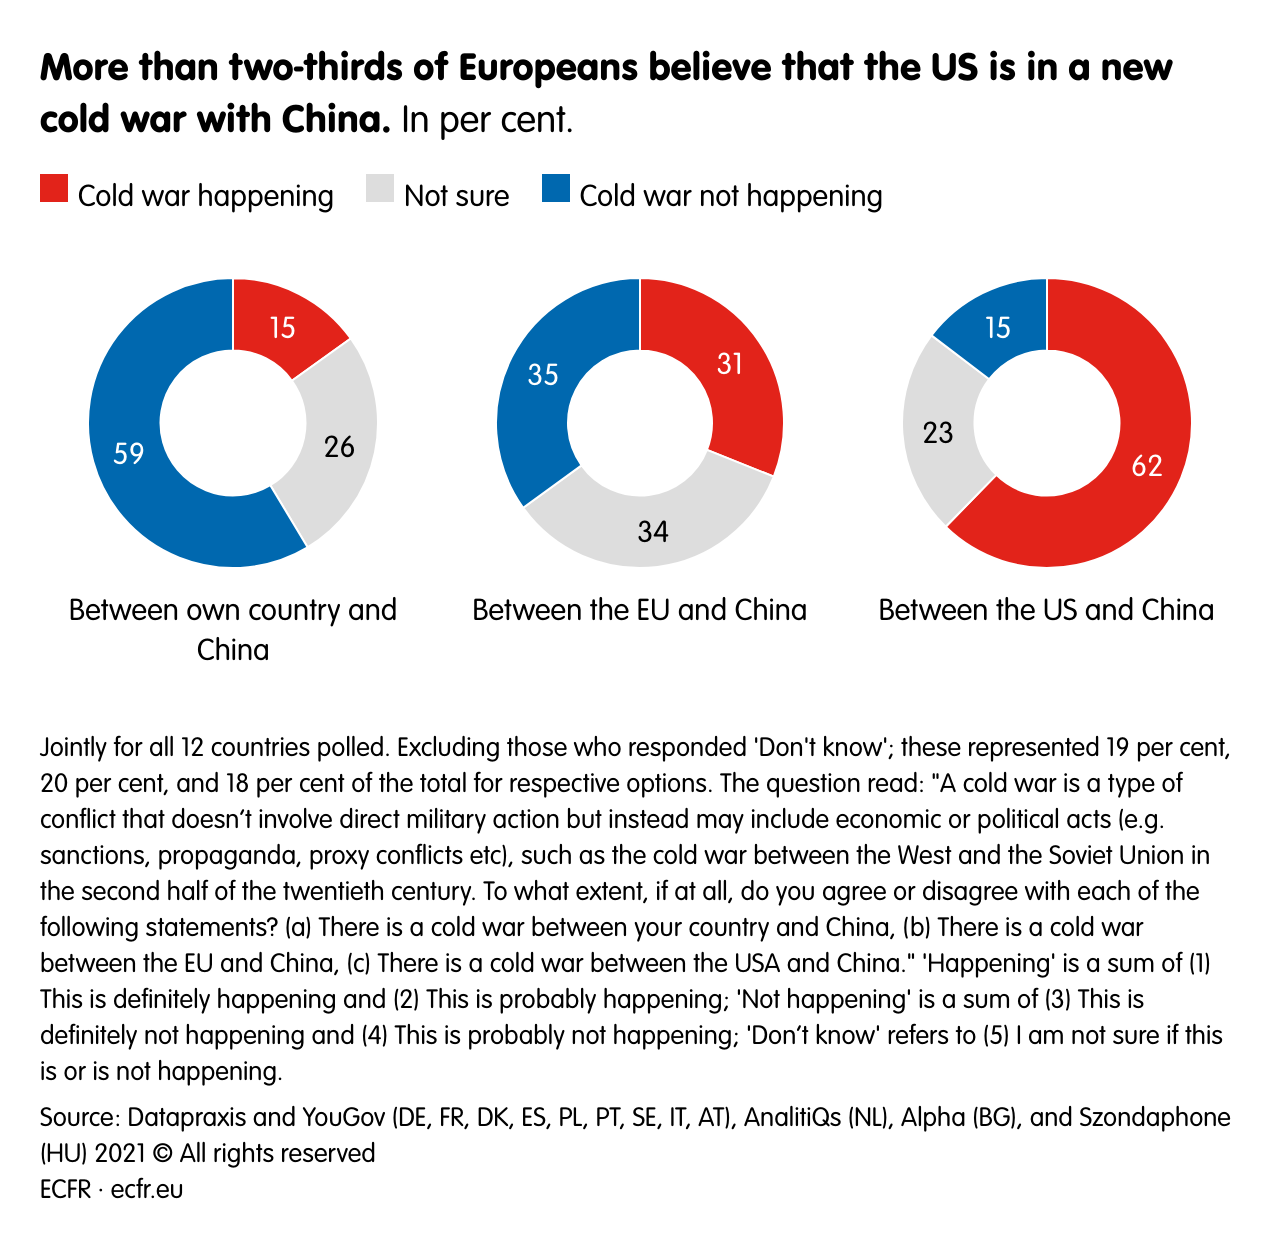 More than two-thirds of Europeans believe that the US is in a new cold war with China.